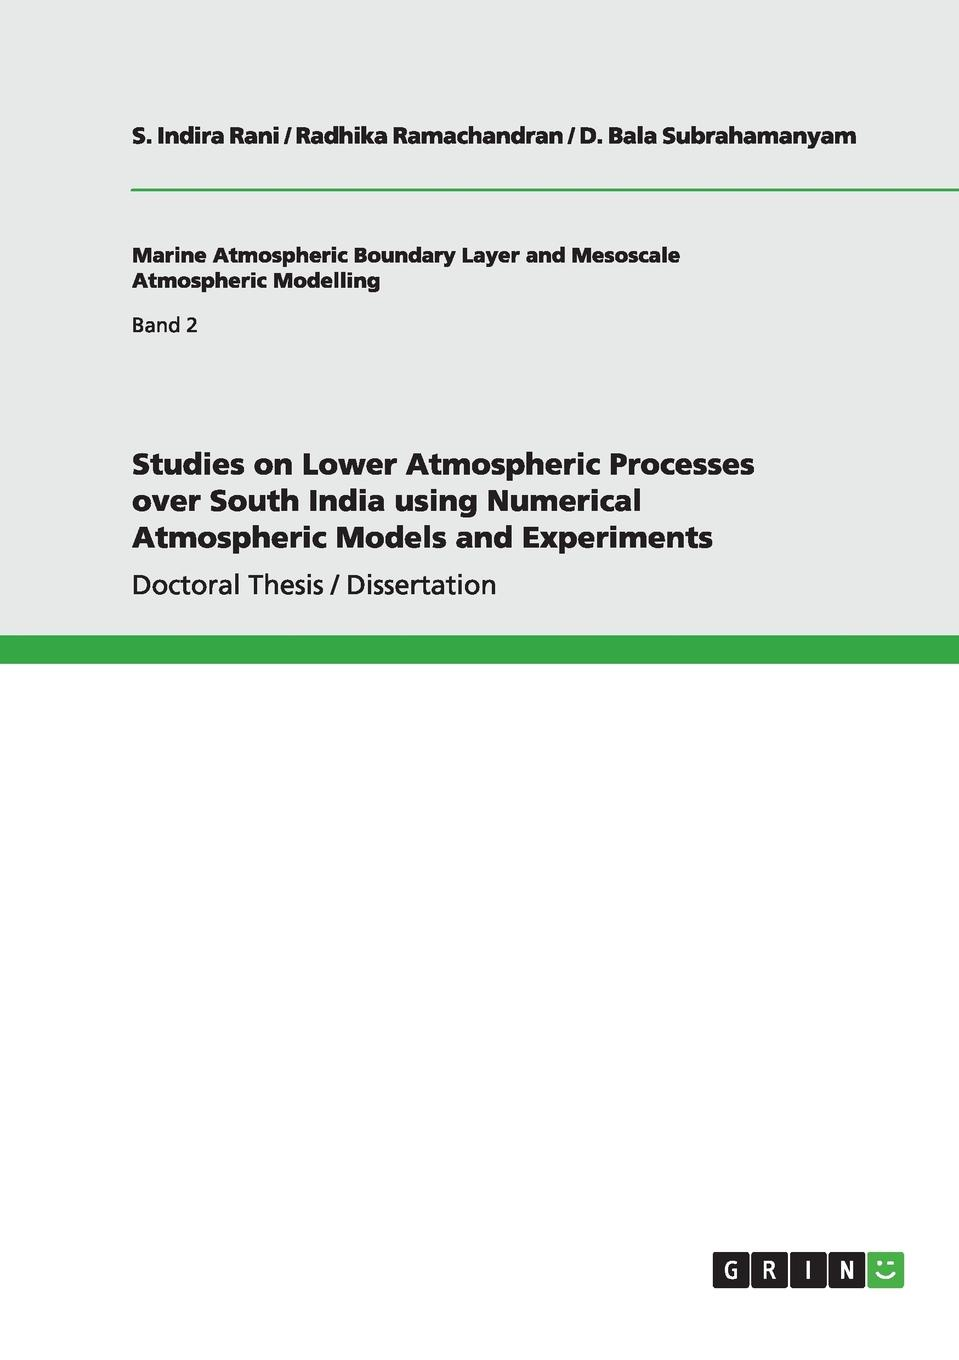 D. Bala Subrahamanyam, S. Indira Rani, Radhika Ramachandran Studies on Lower Atmospheric Processes over South India using Numerical Atmospheric Models and Experiments atmospheric monitoring with arduino